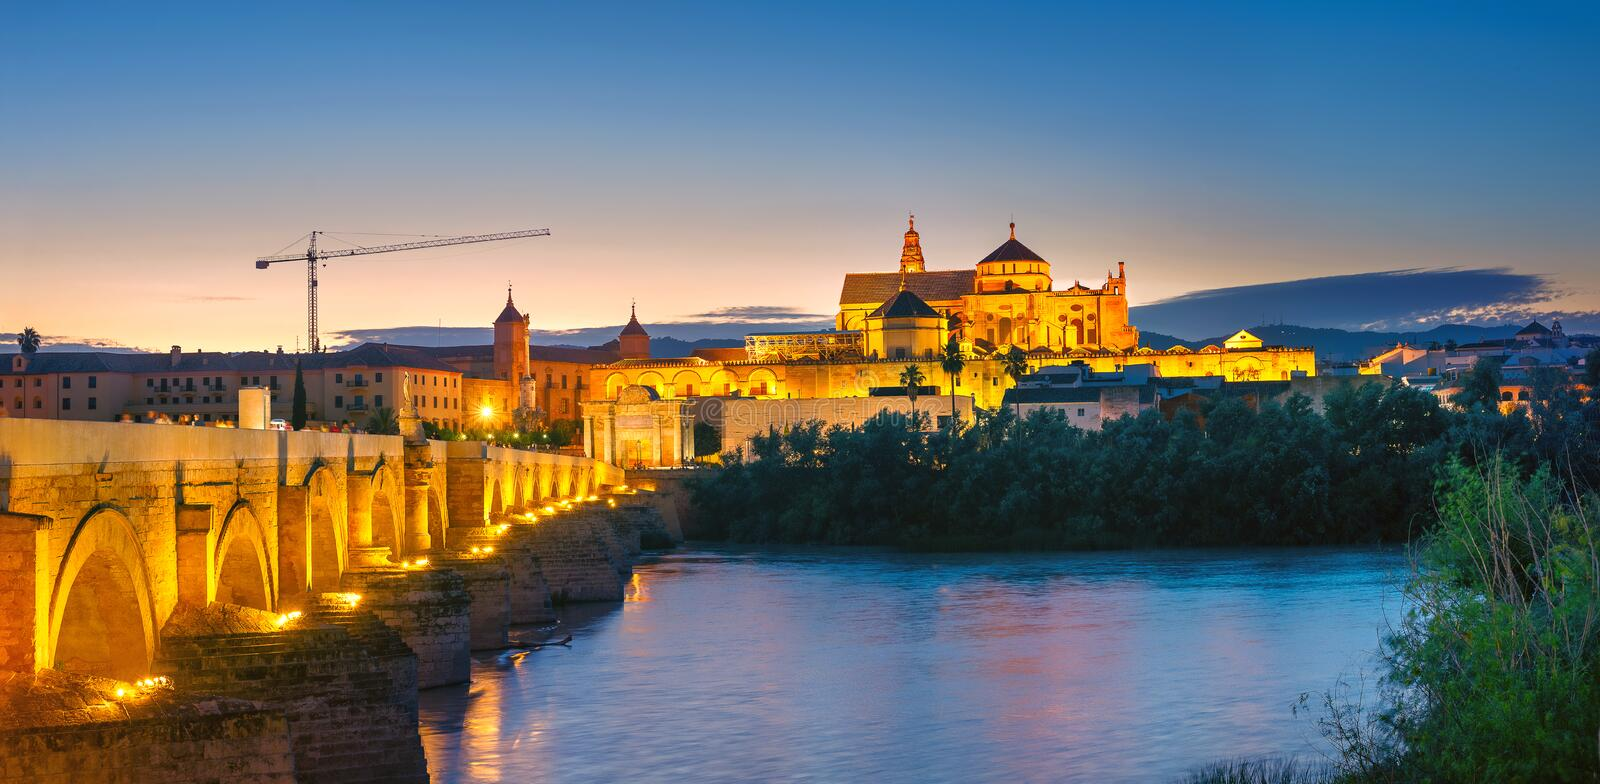 Night landscape with Roman Bridge and Great Mosque Mezquita cathedral, Cordoba, Andalusia, Spain stock photography